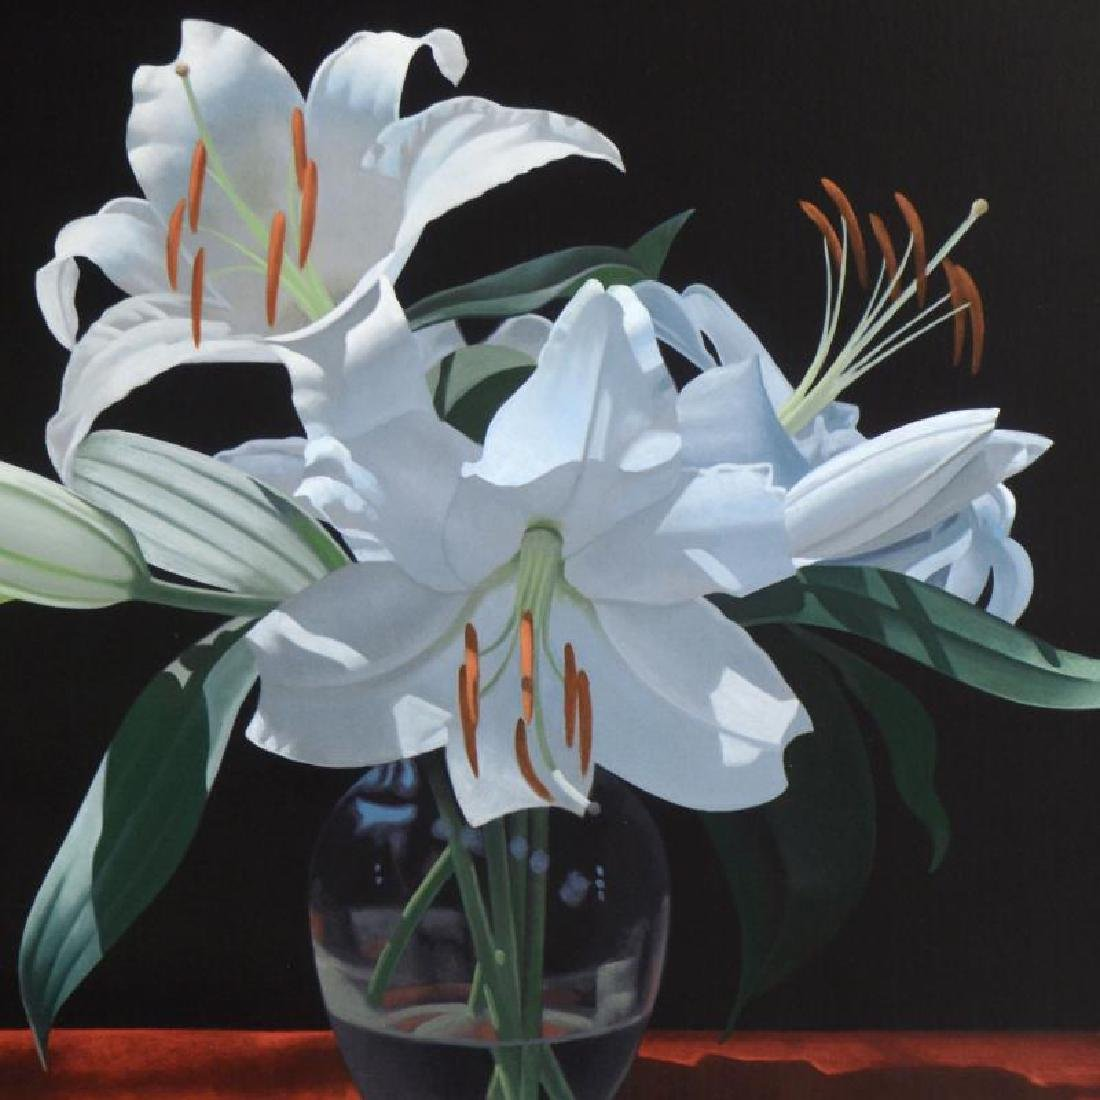 White Lilies In Soho by Davis, Brian - 2